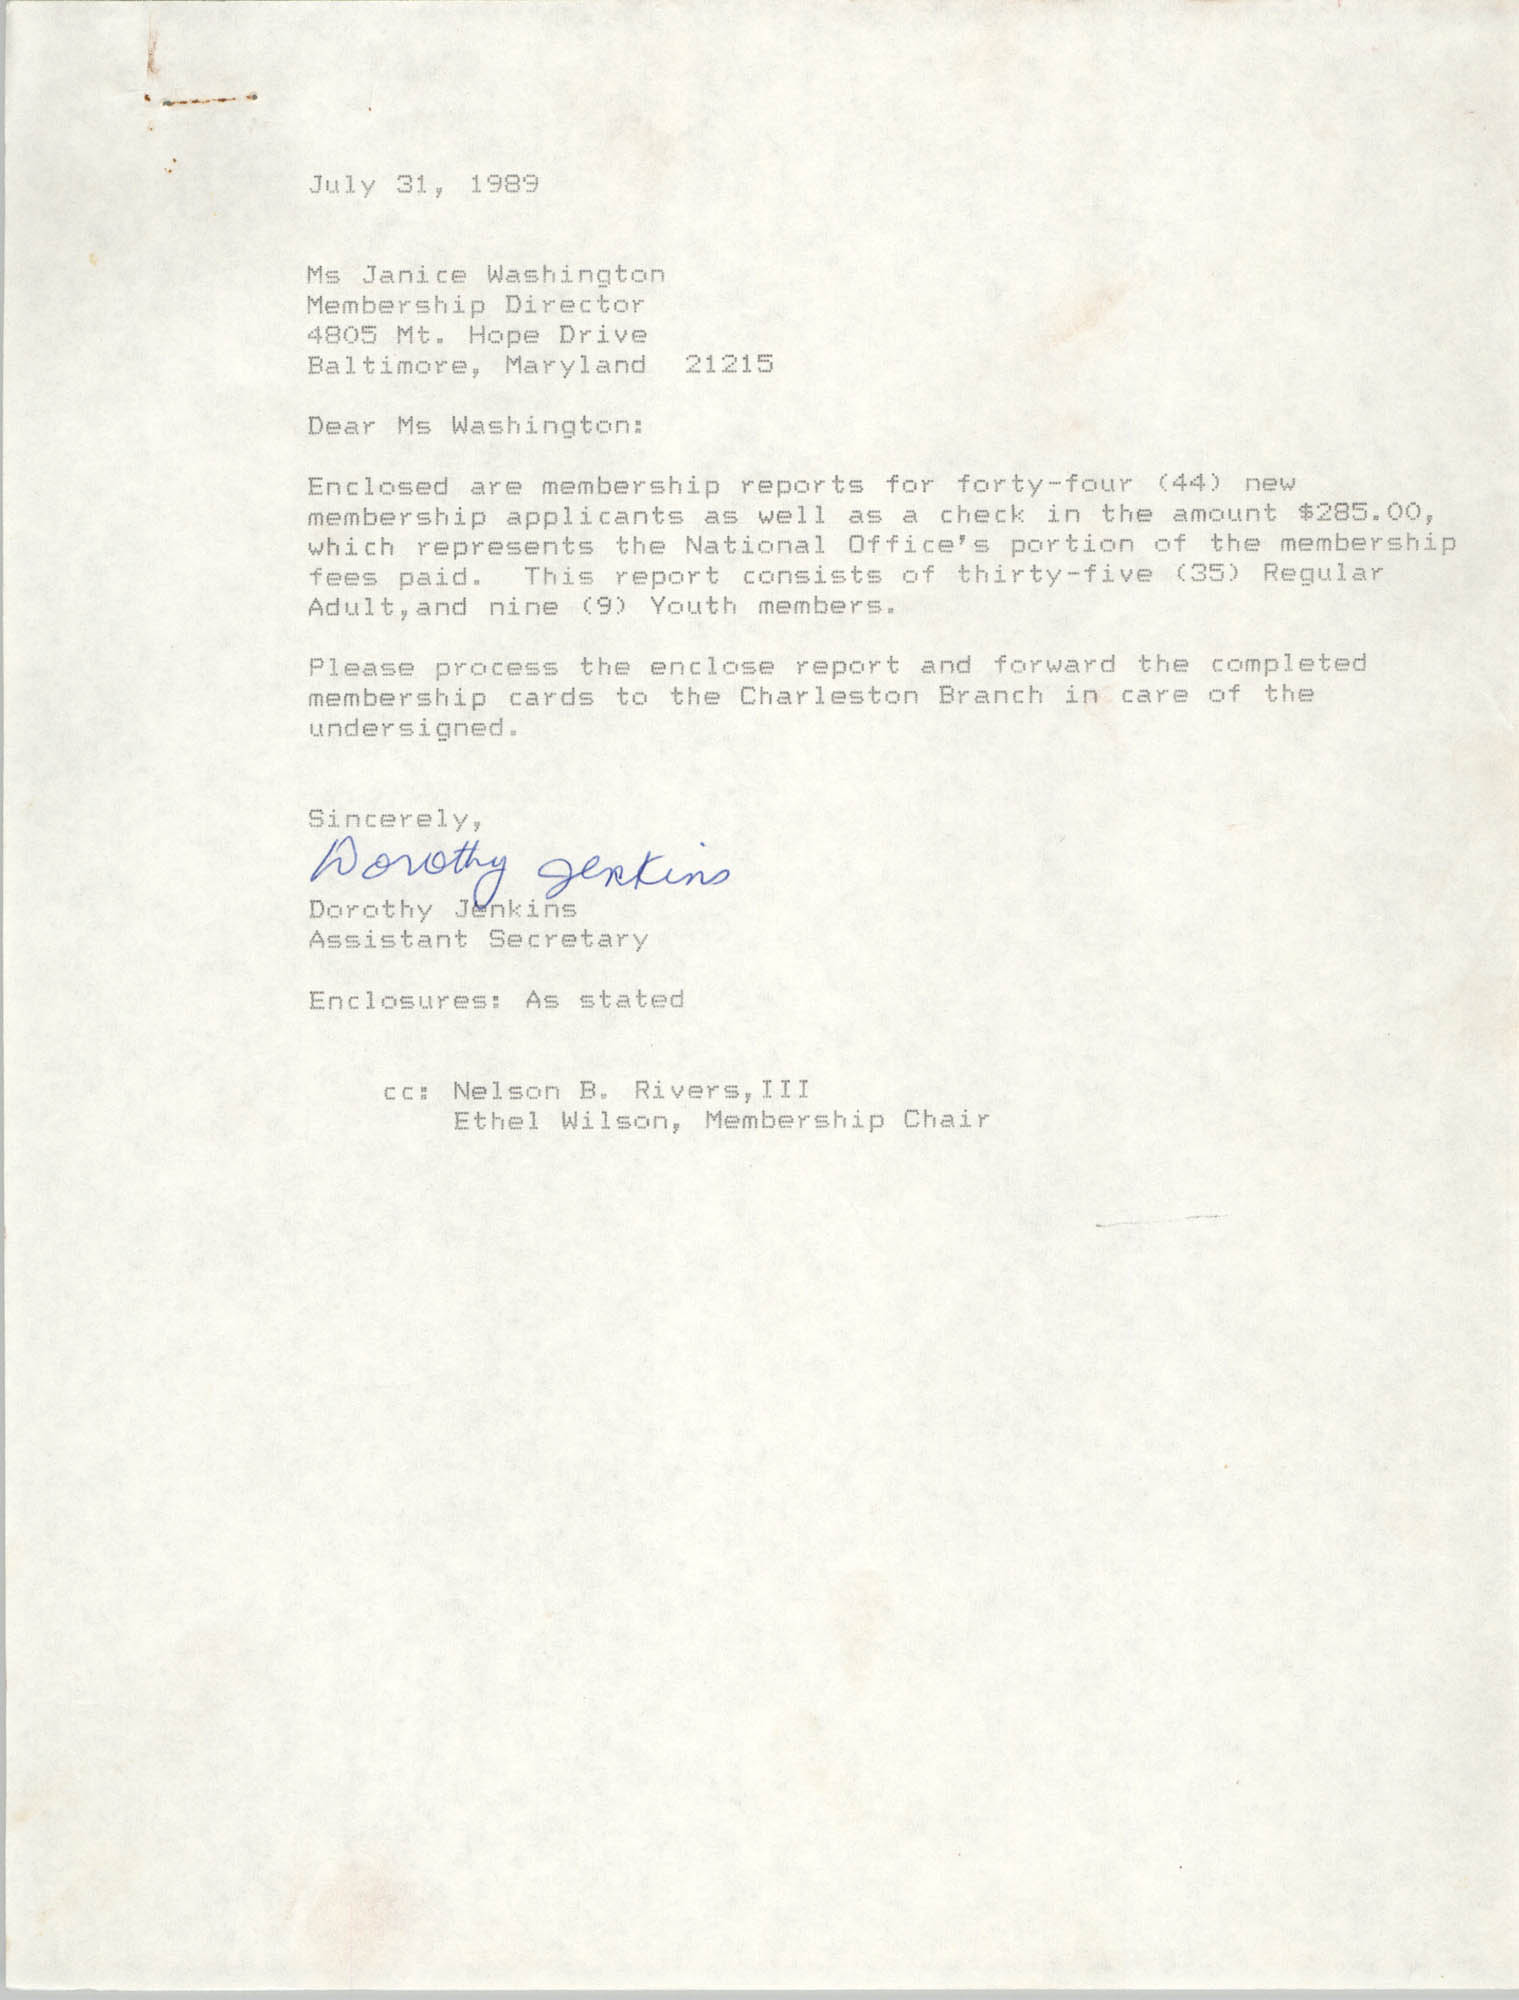 Letter from Dorothy Jenkins to Janice Washington, NAACP, July 31, 1989